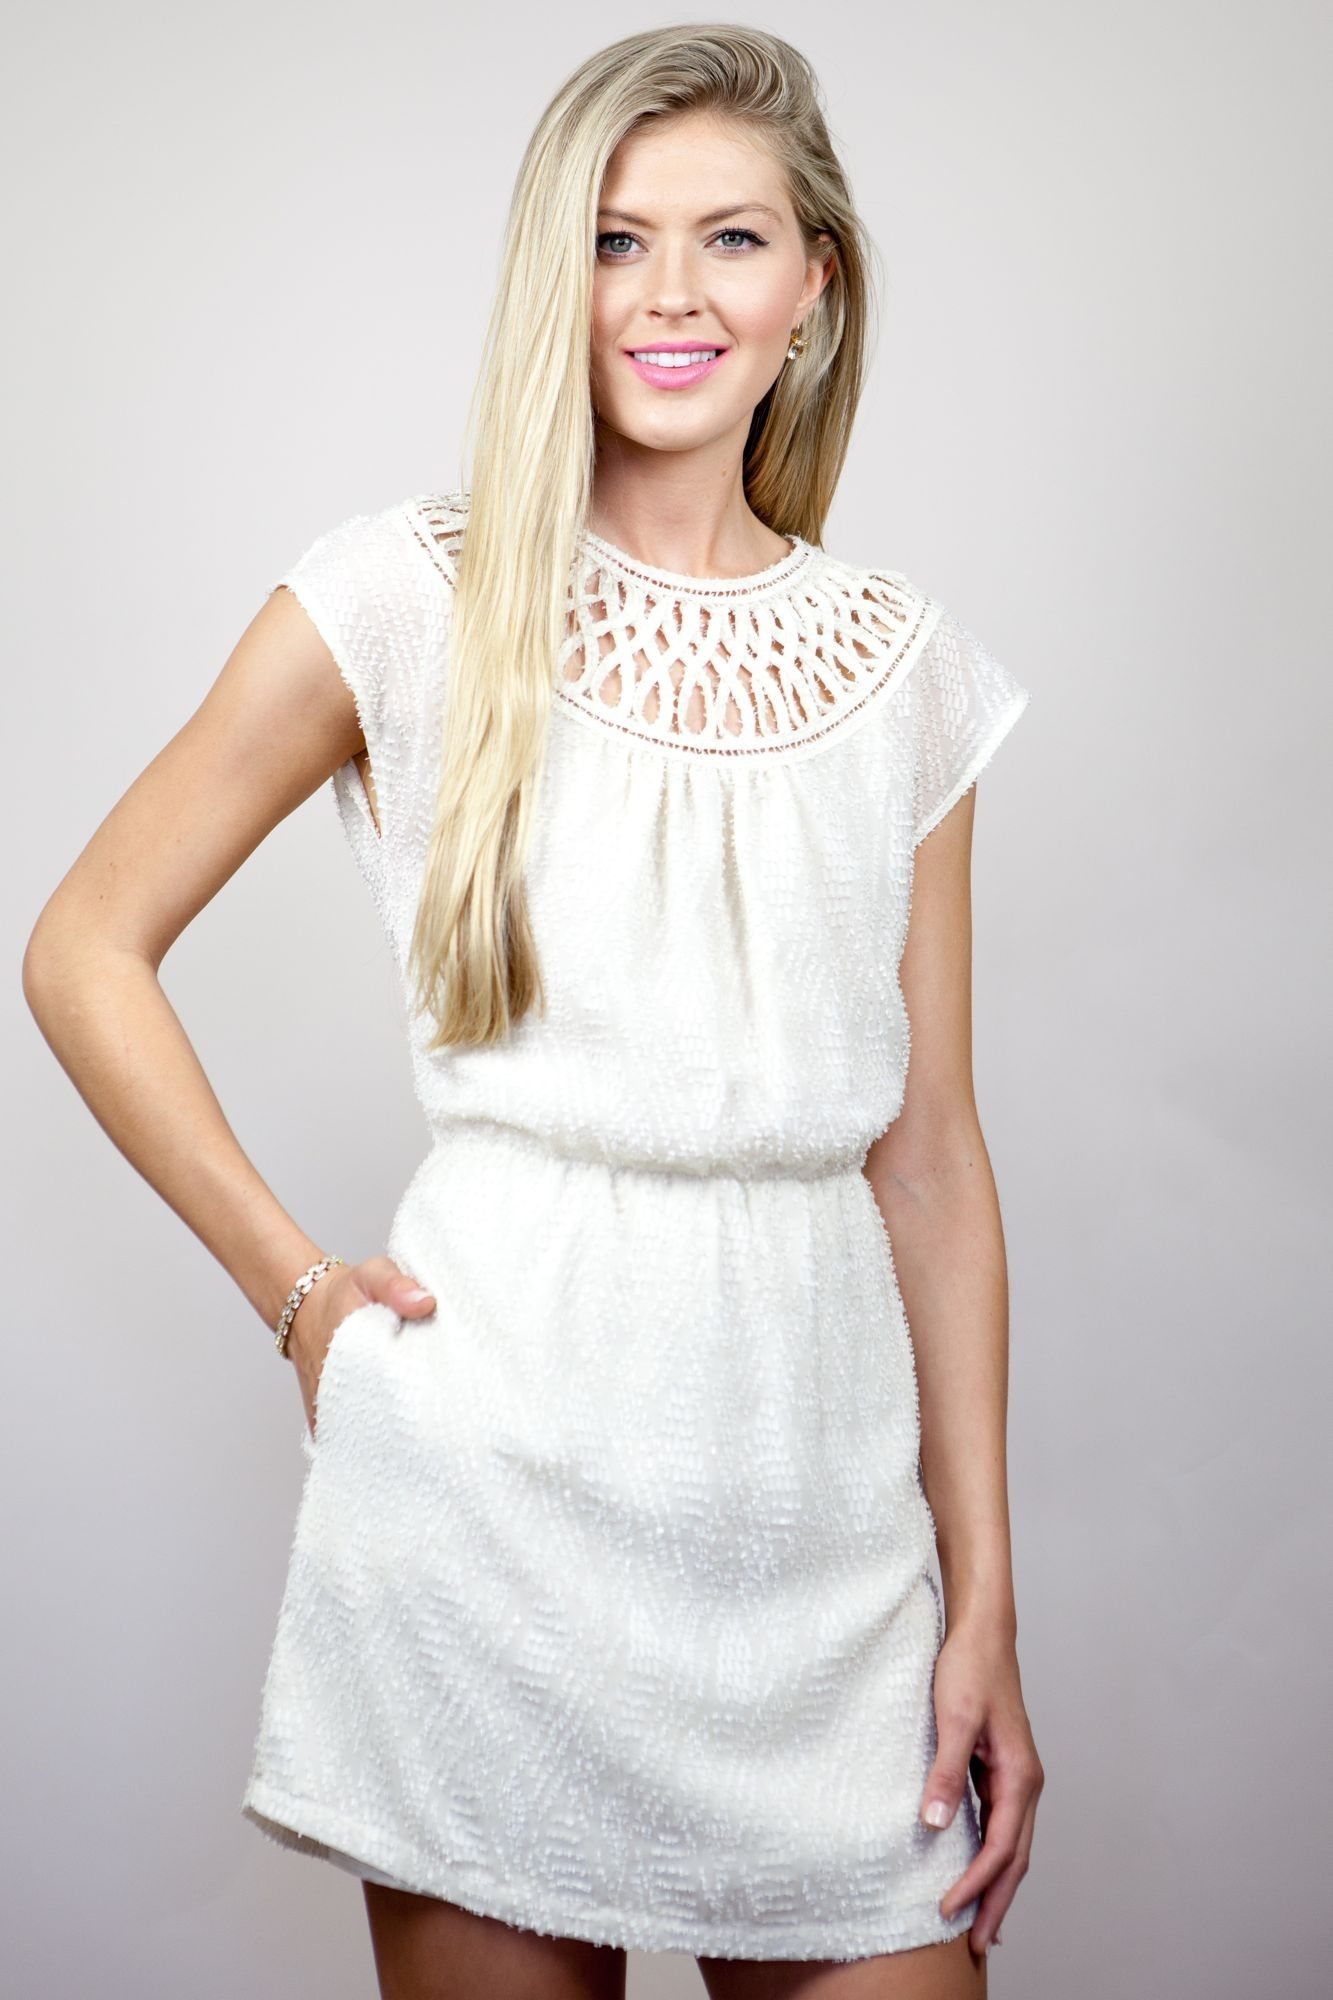 How to tie a white dress crochet with a rose